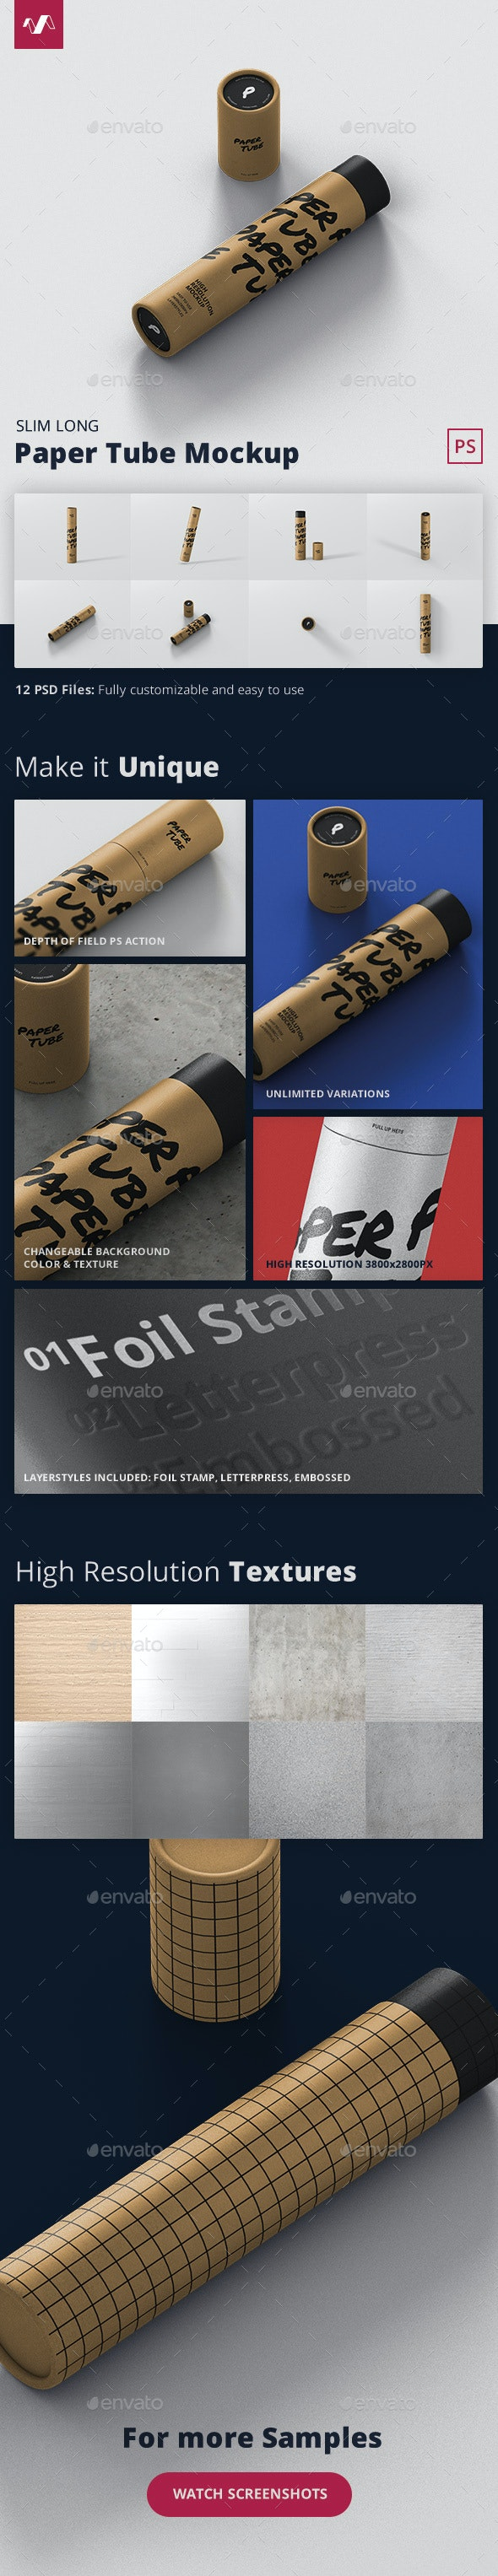 Paper Tube Mockup - Slim Long Size - Miscellaneous Packaging